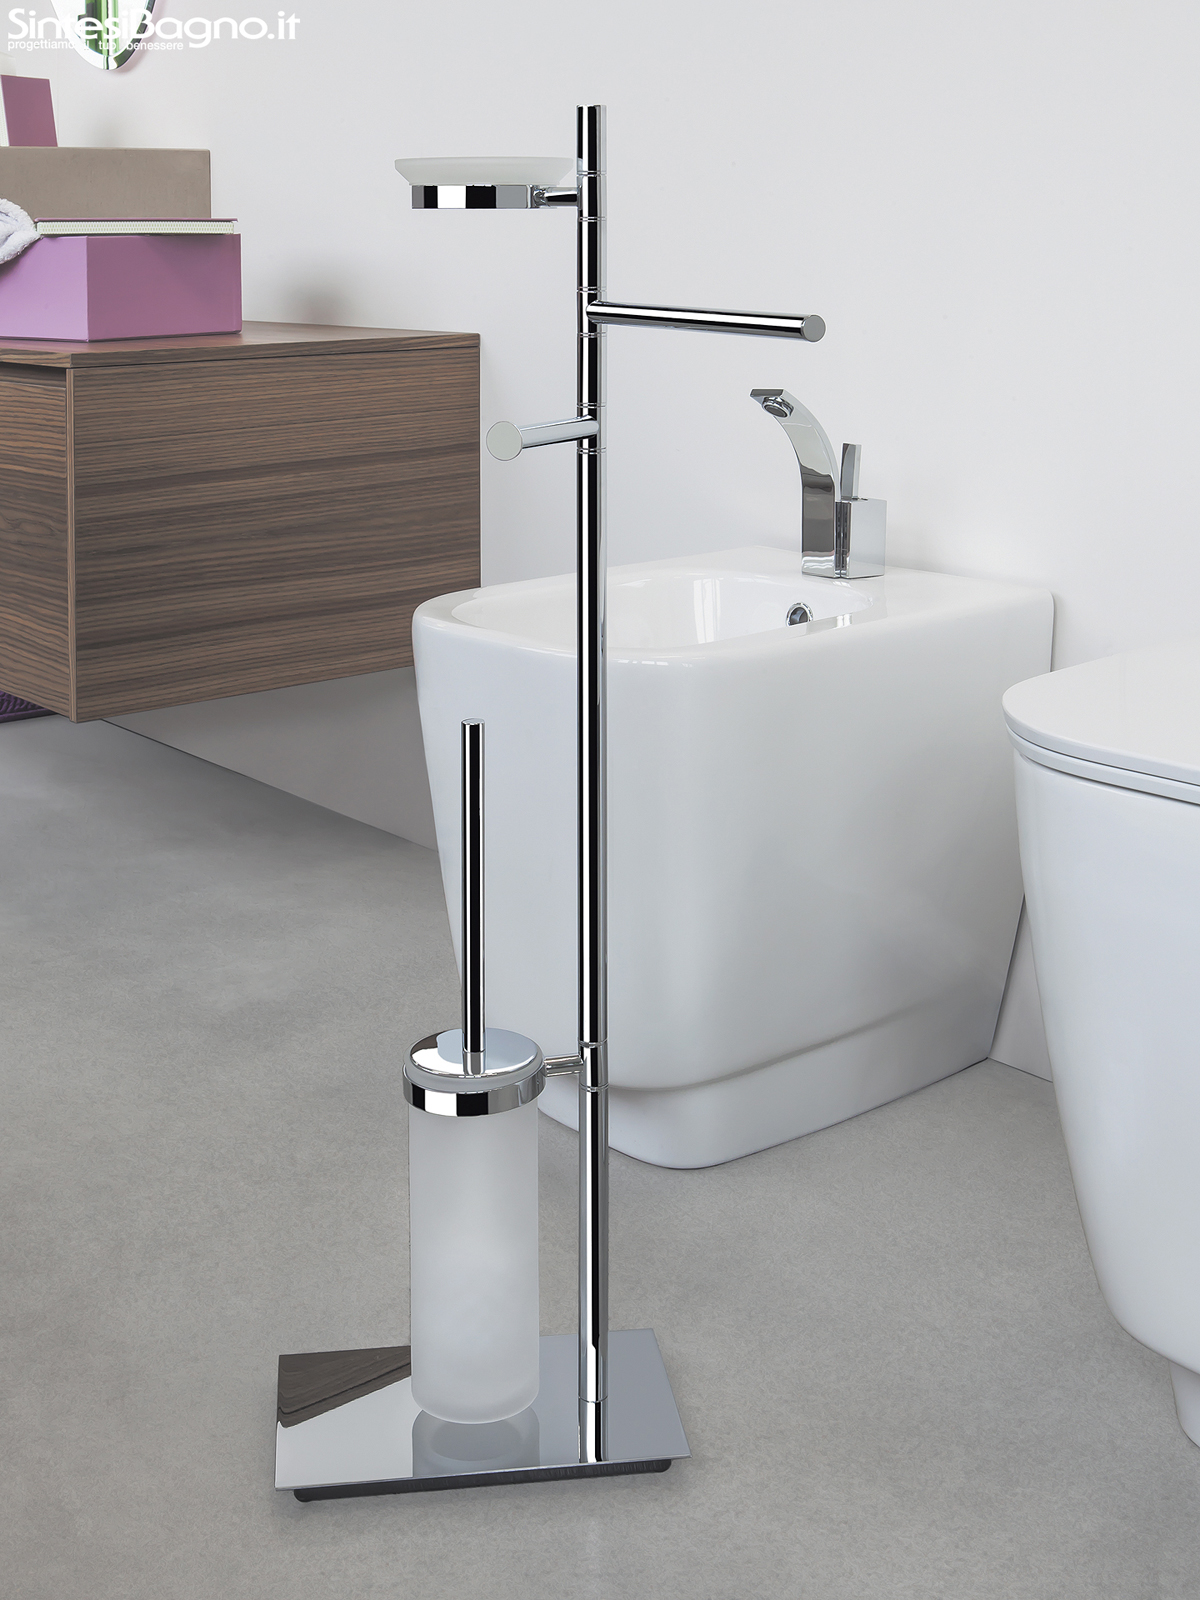 Piantane e colonne serie square di colombo design for Arredo bagno on line